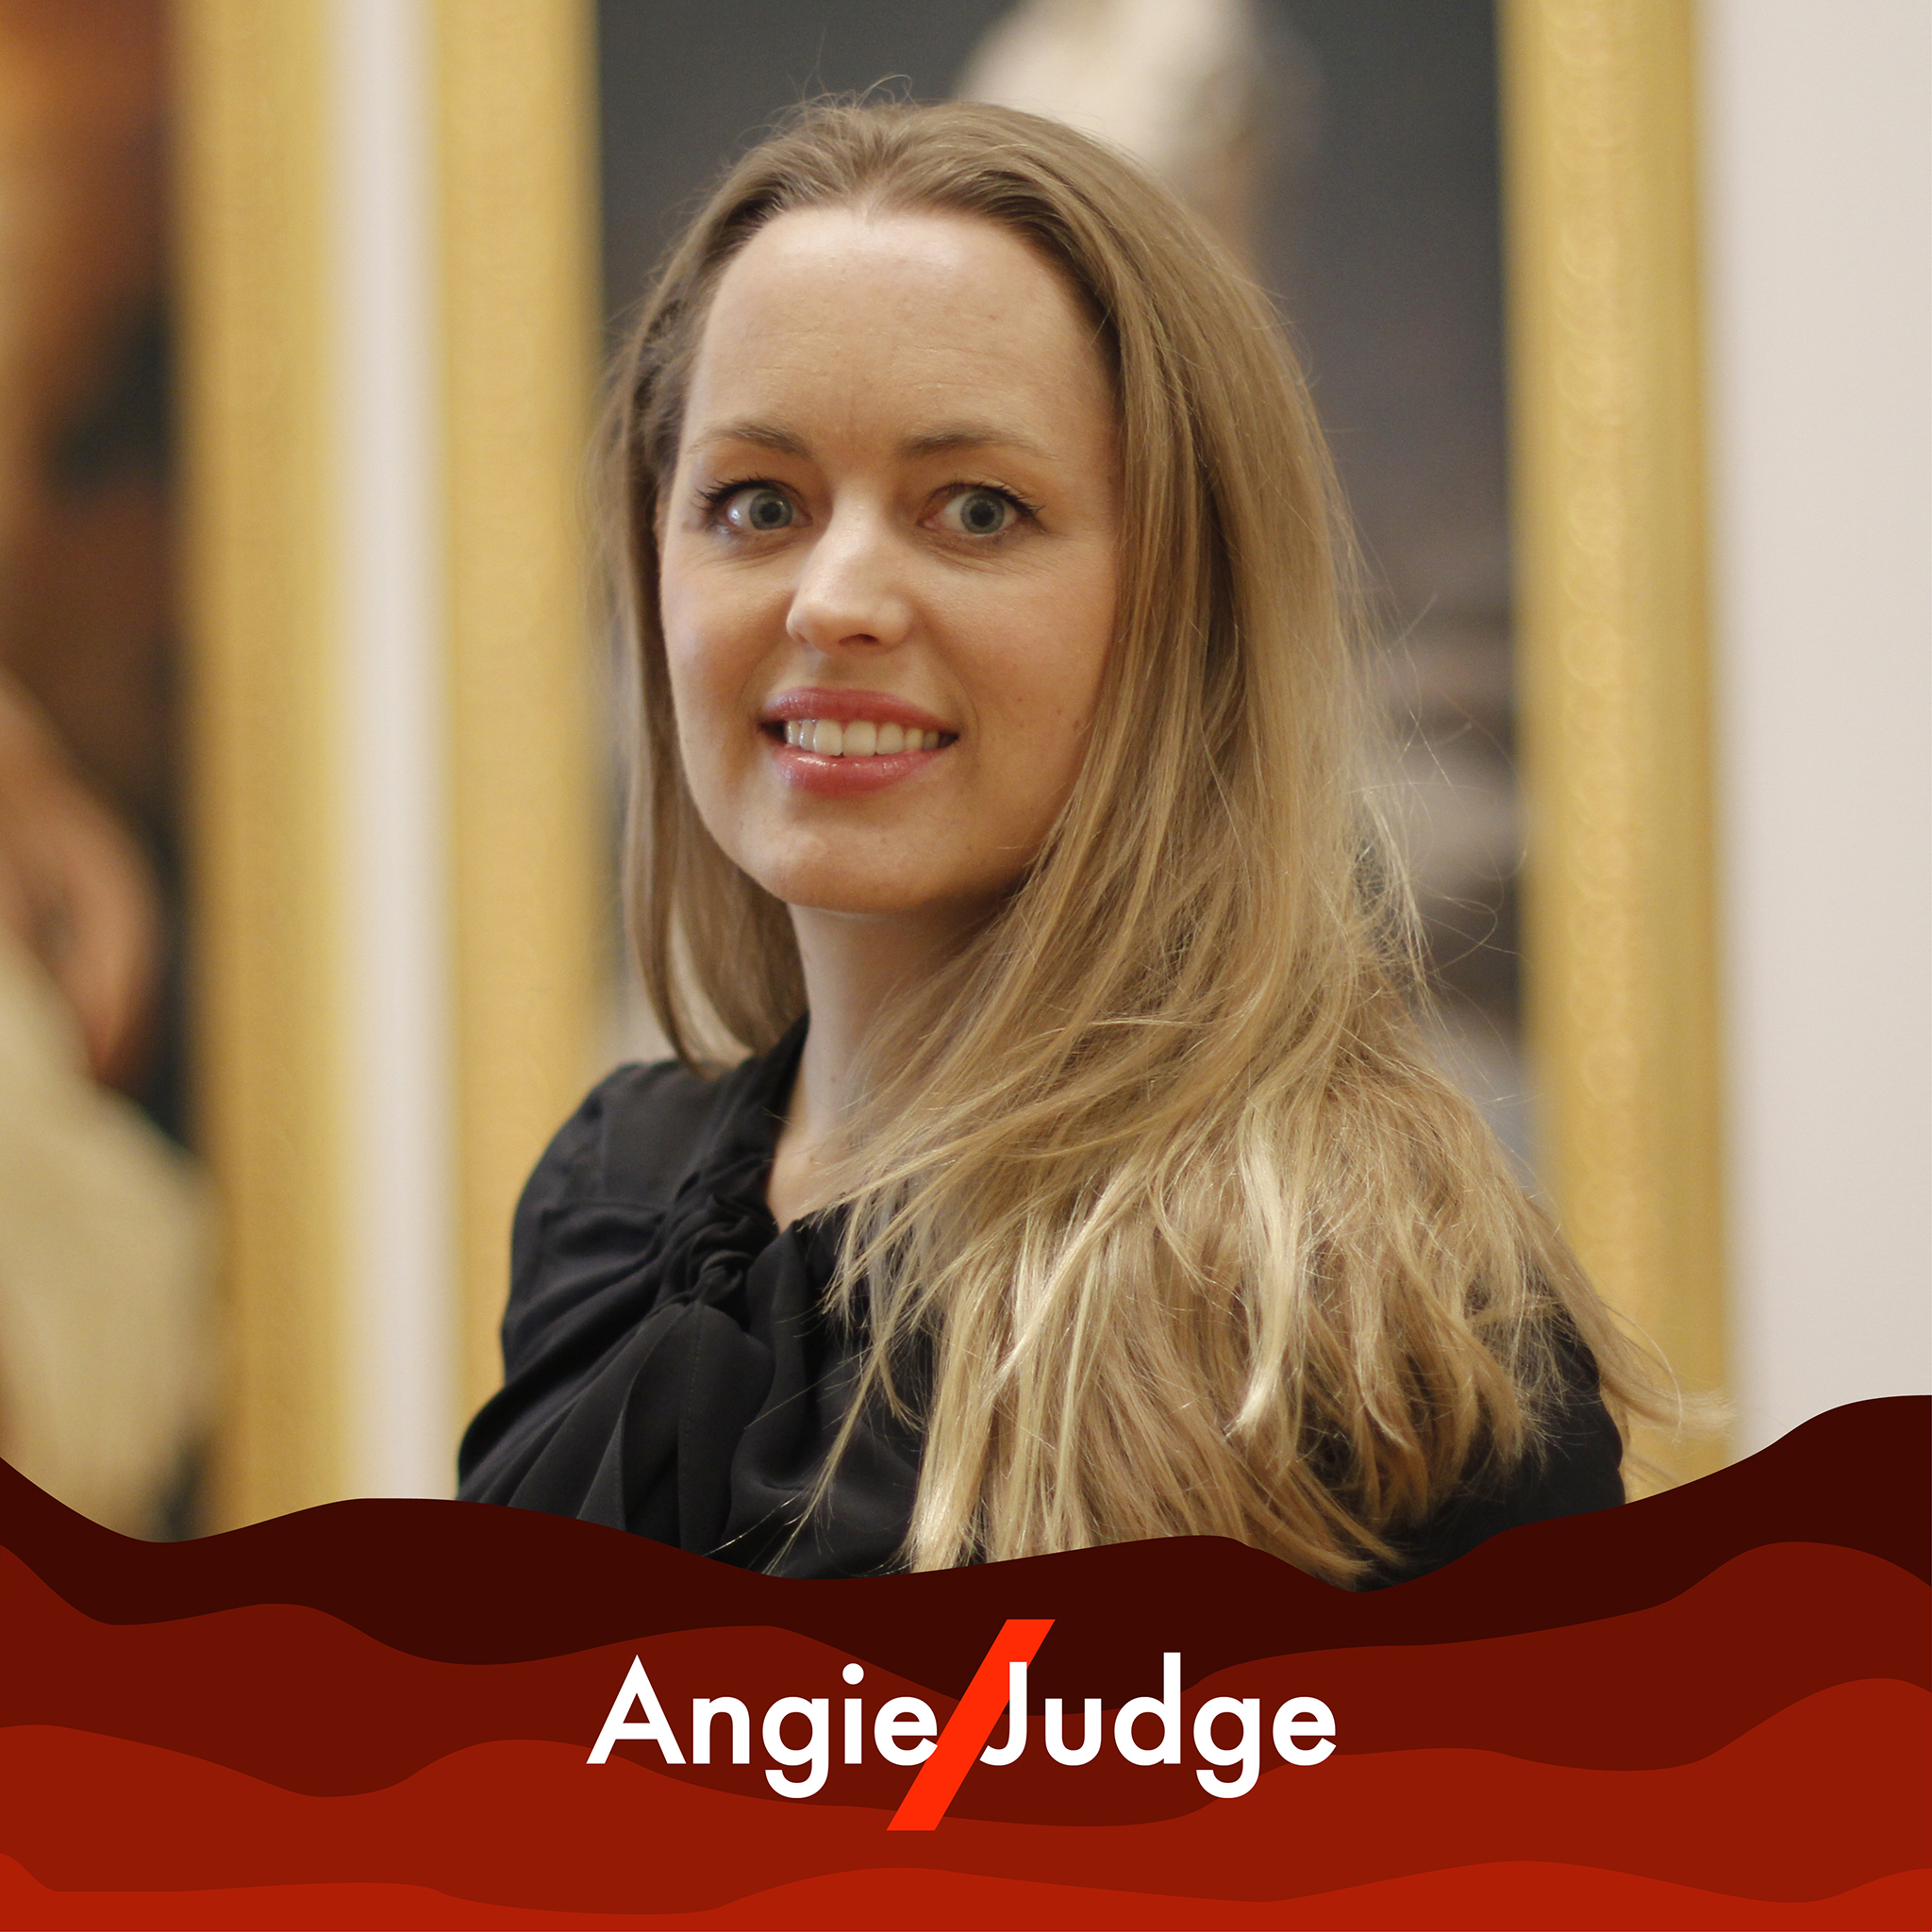 A picture of Angie Judge